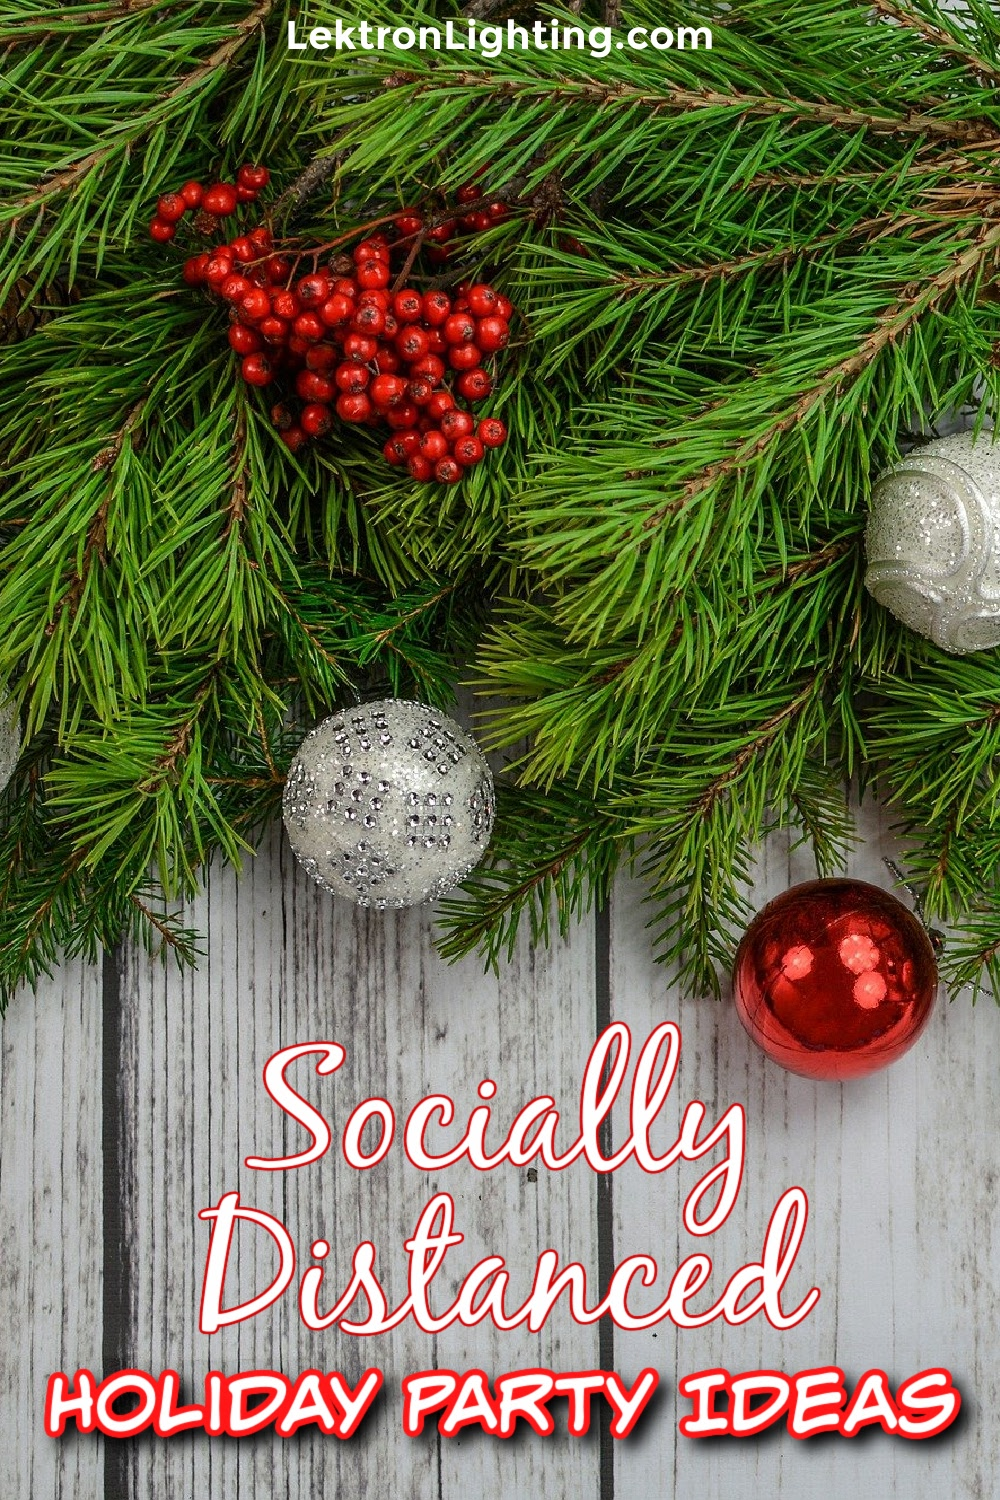 The parties may need to be different, but we can utilize socially distanced holiday party ideas for your business.